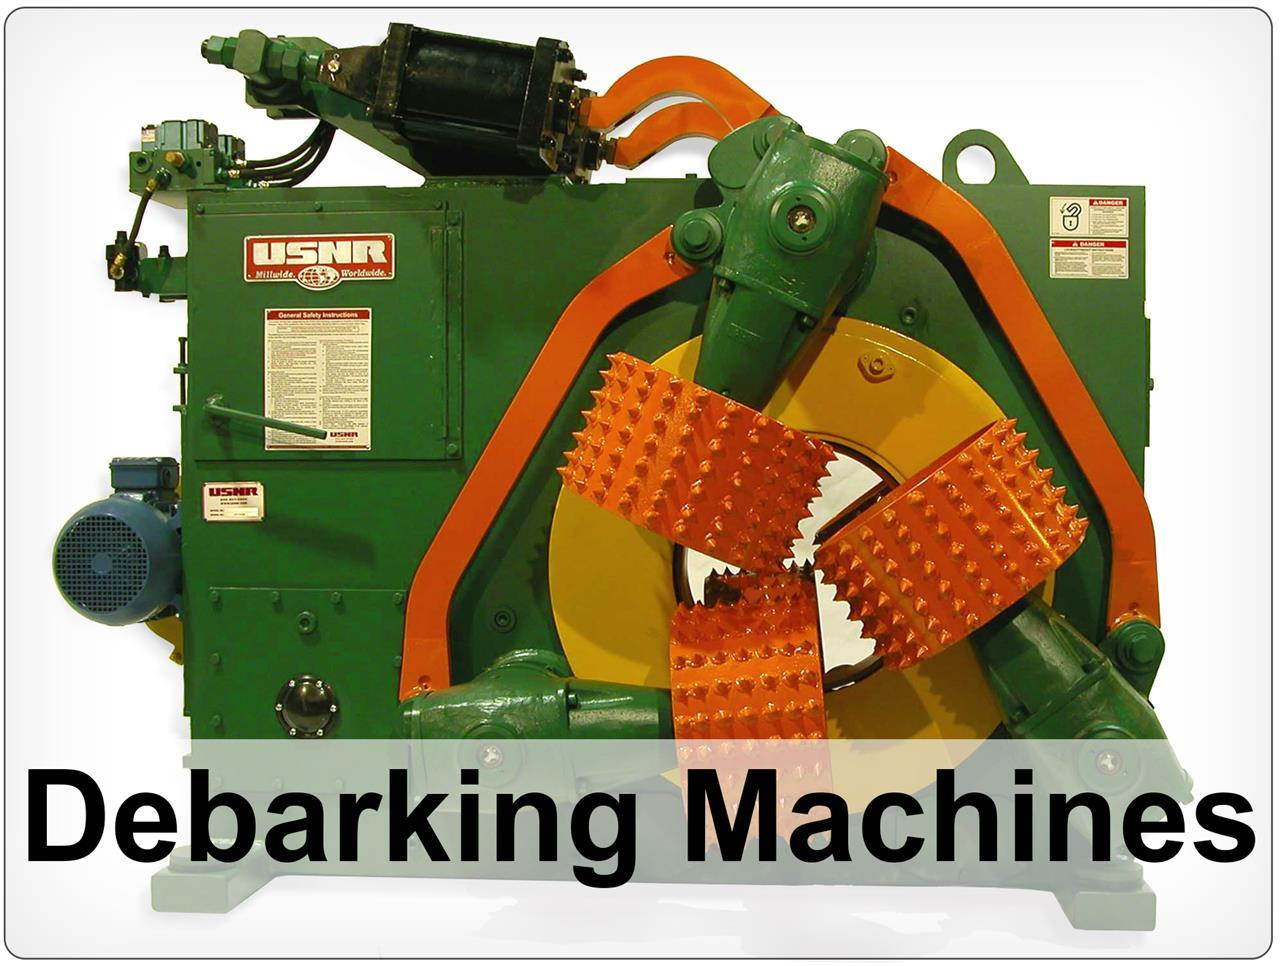 Rebuilt Cambio Debarking machine